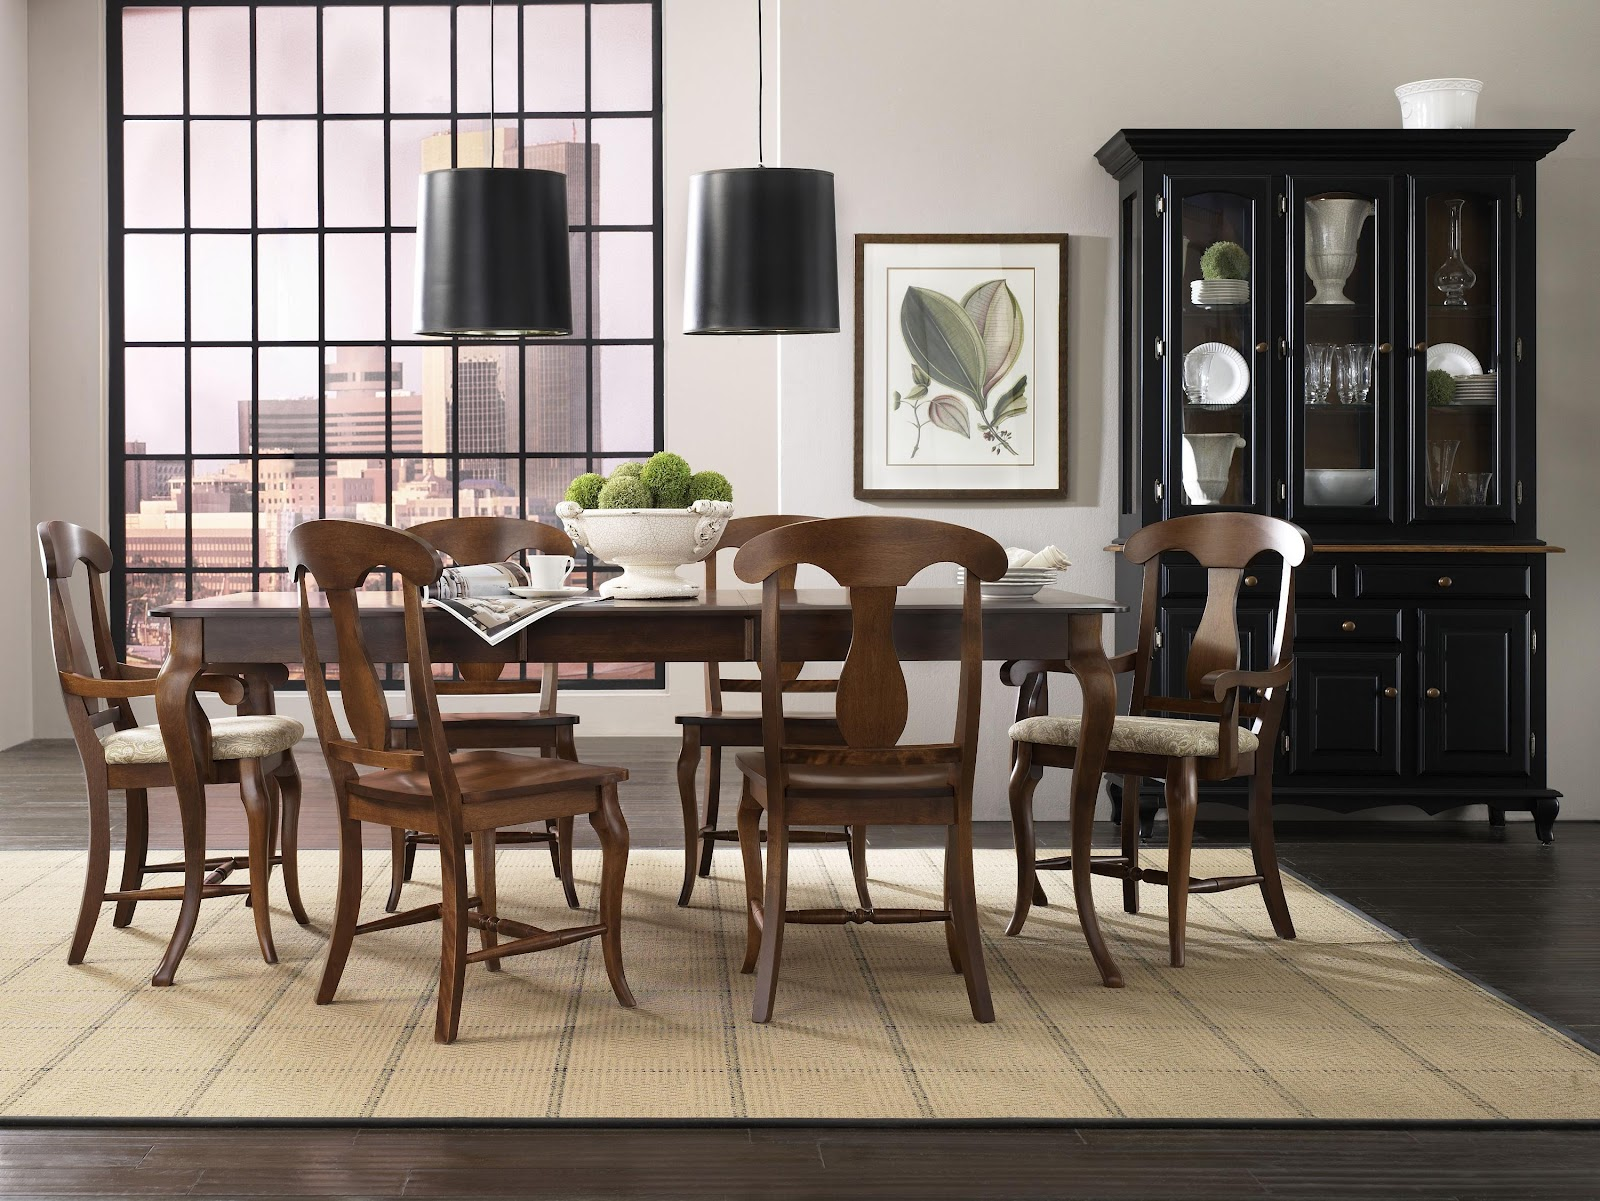 Chairs Dining Room: Canadel Dining Room Sets New York